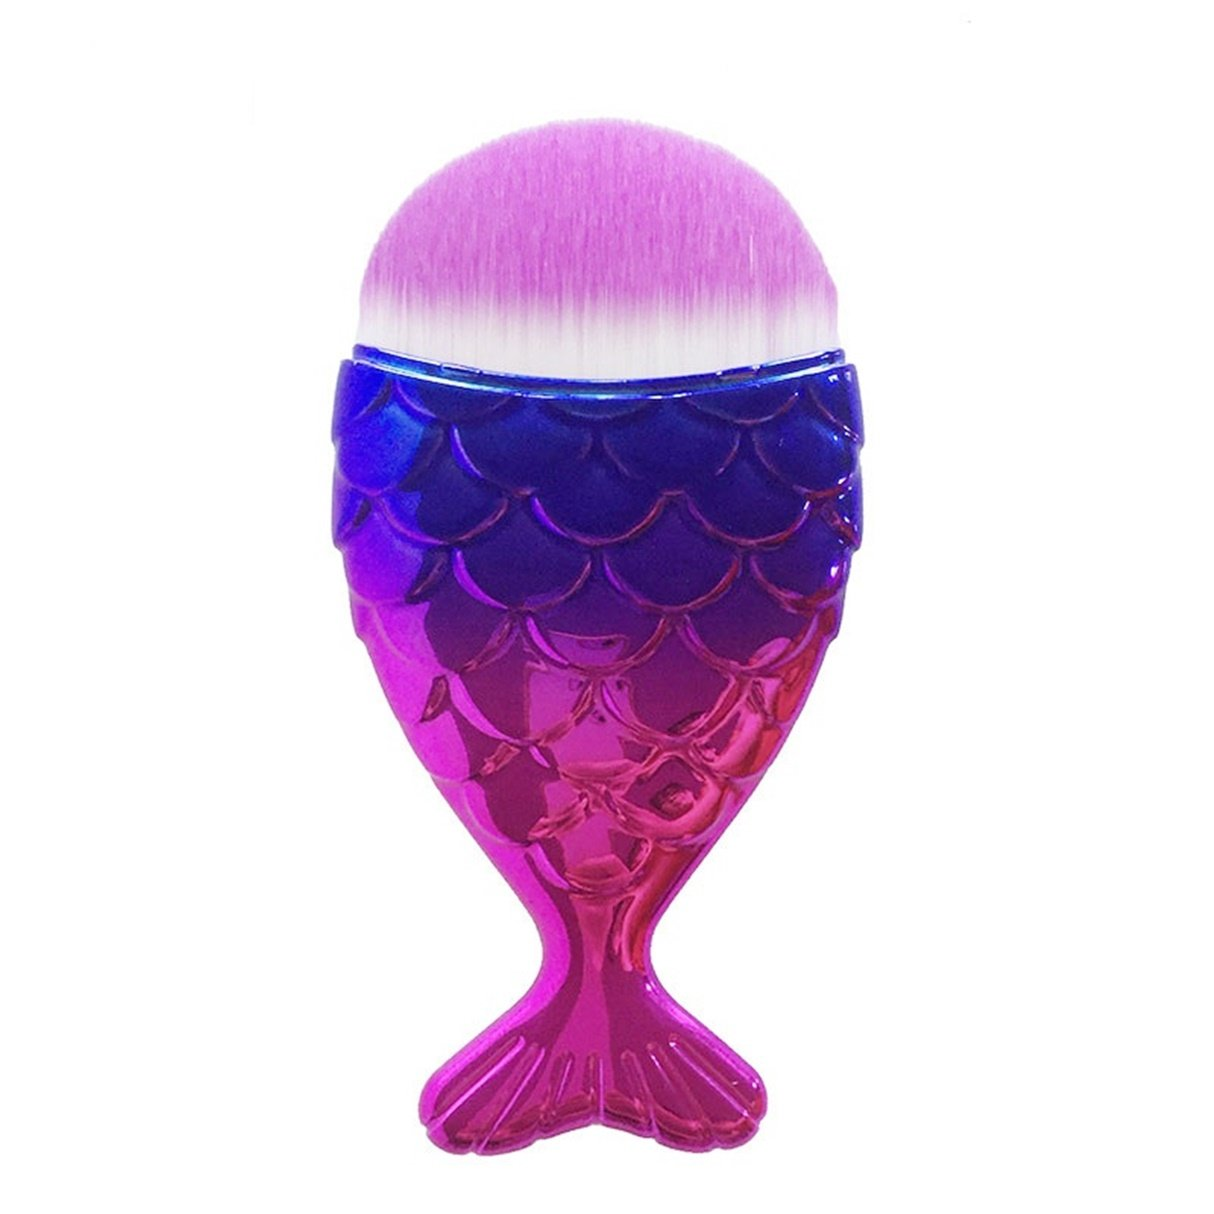 1 Pcs Mermaid Fish Makeup Brushes Set Powder Contour Cosmetic Make Up Tool Foundation Natural Beauty Palette Eyeshadow Deluxe Popular Eyes Faced Colorful Rainbow Hair Highlights Glitter Kit, Type-15